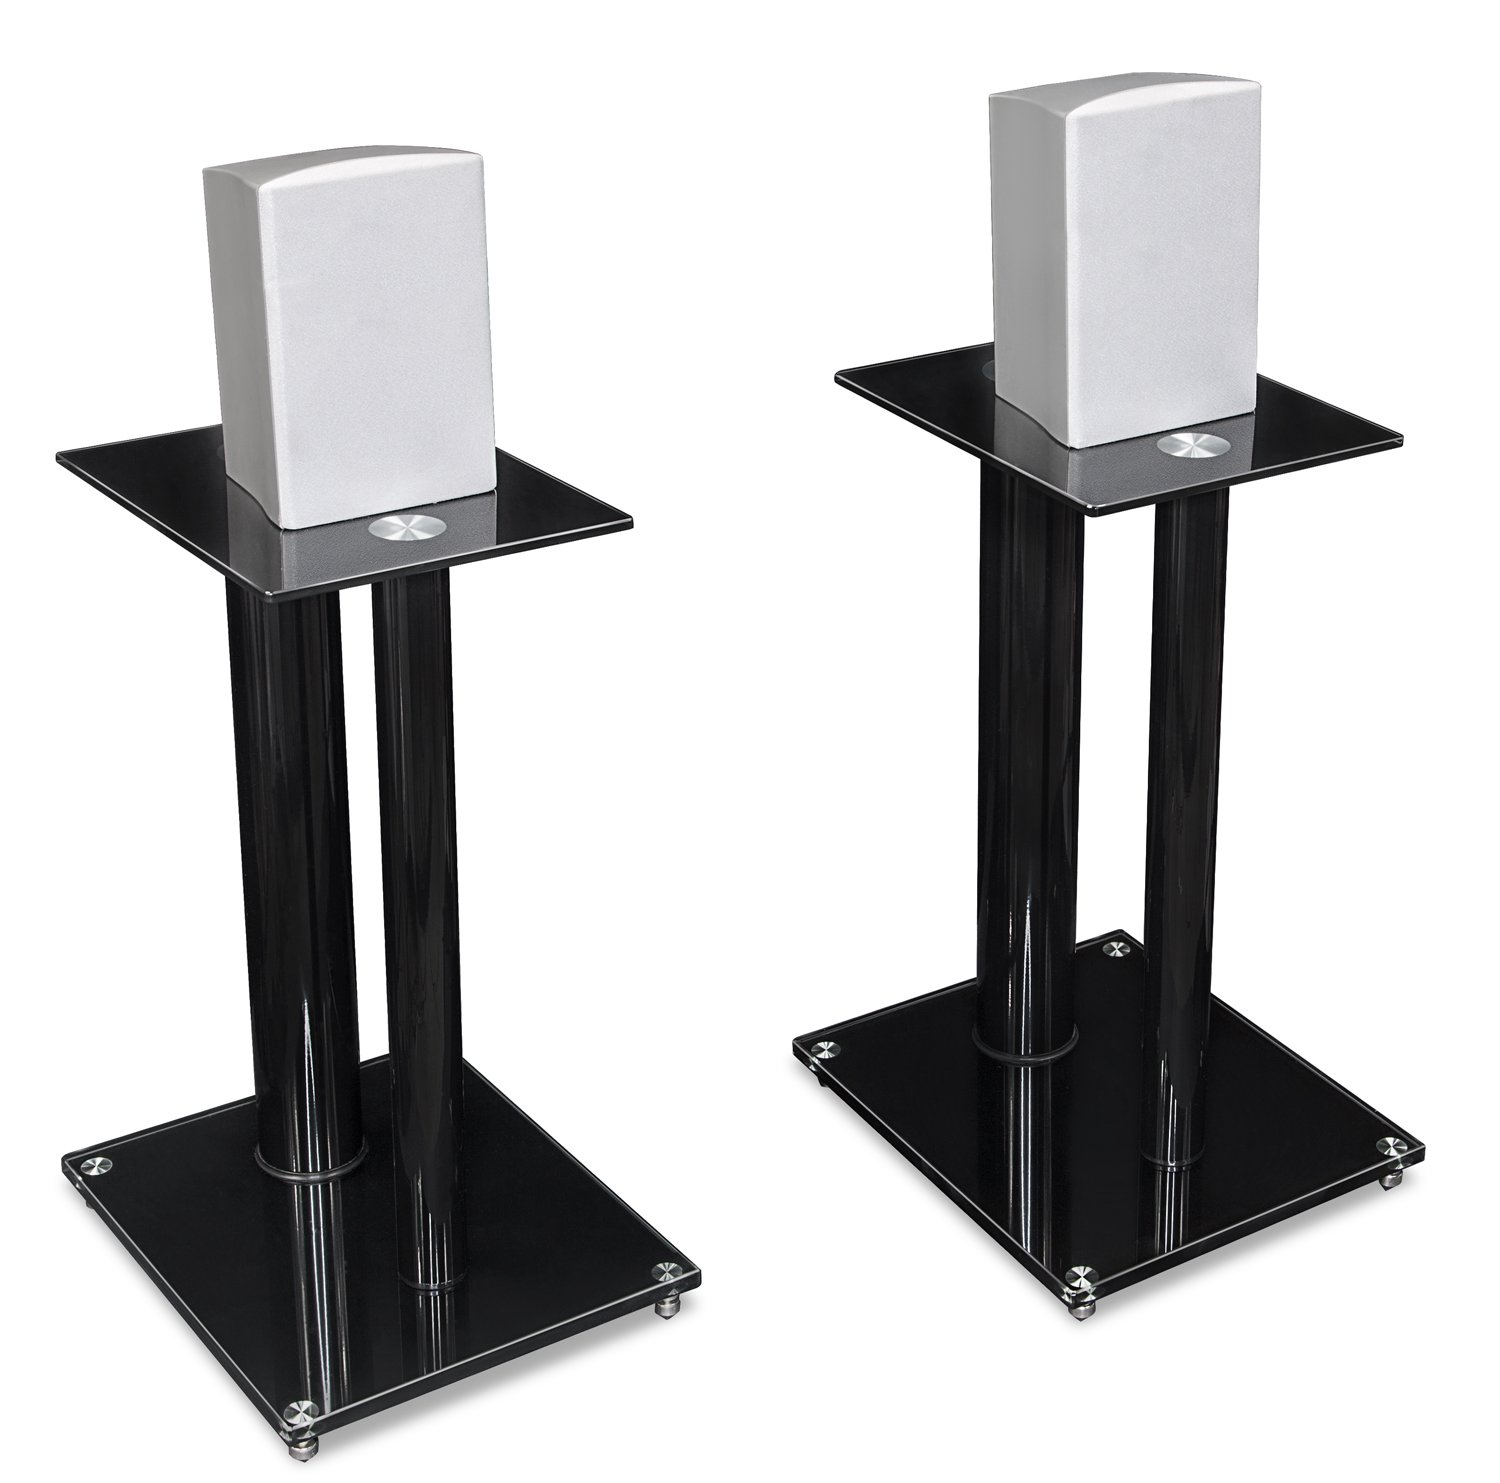 9 Best Speaker Stands For Speaker Owners-With Buying Guide 6